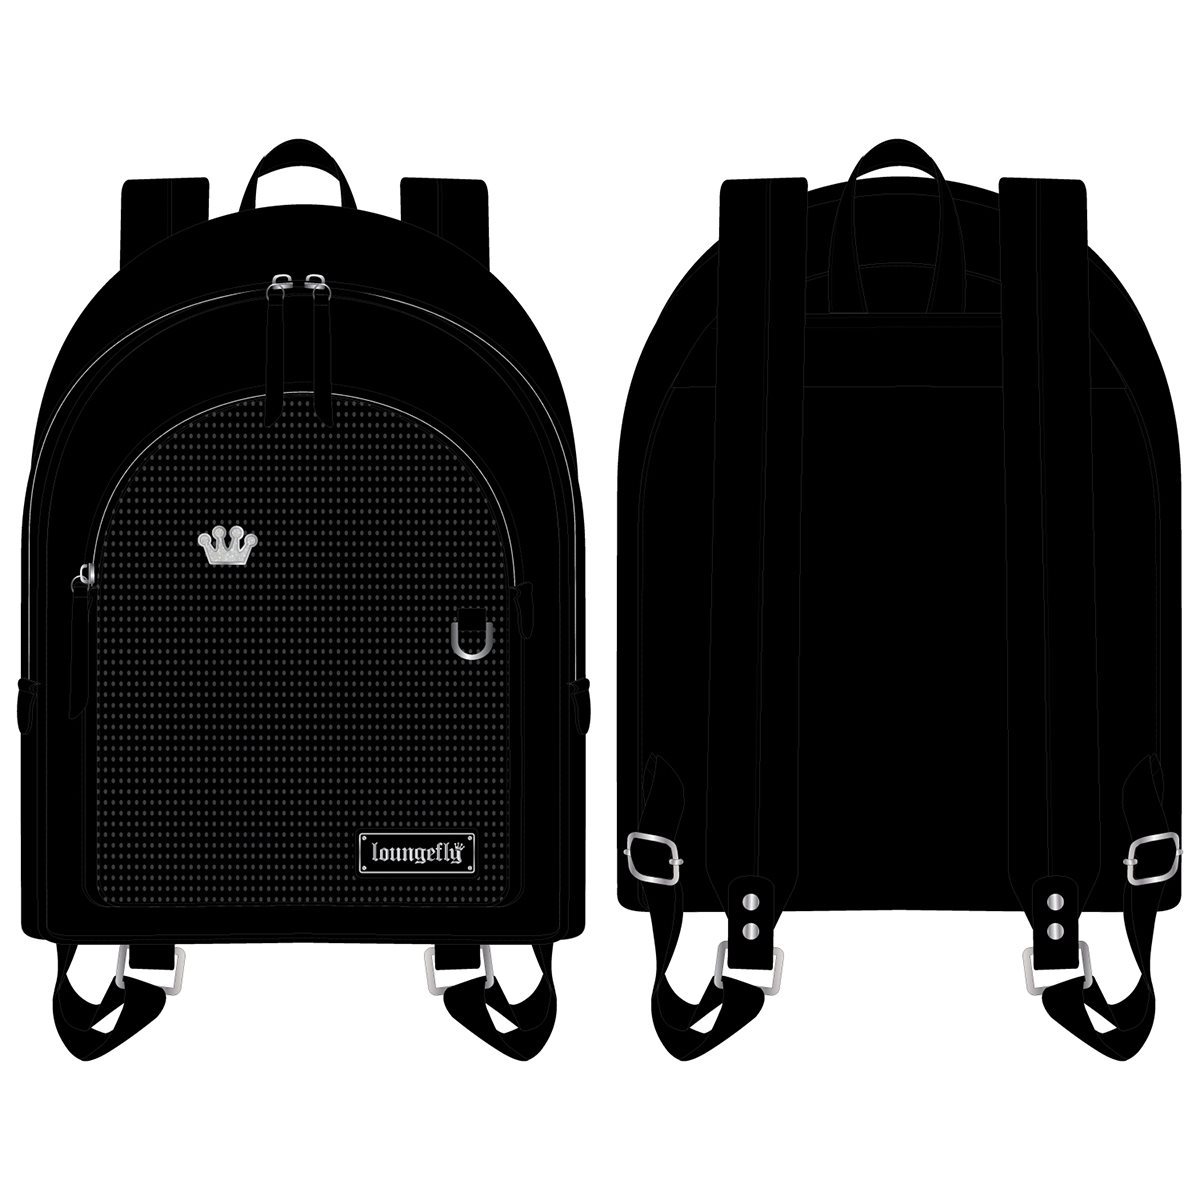 Disney Loungefly Mini Backpack Bag - Pin Trader - Black